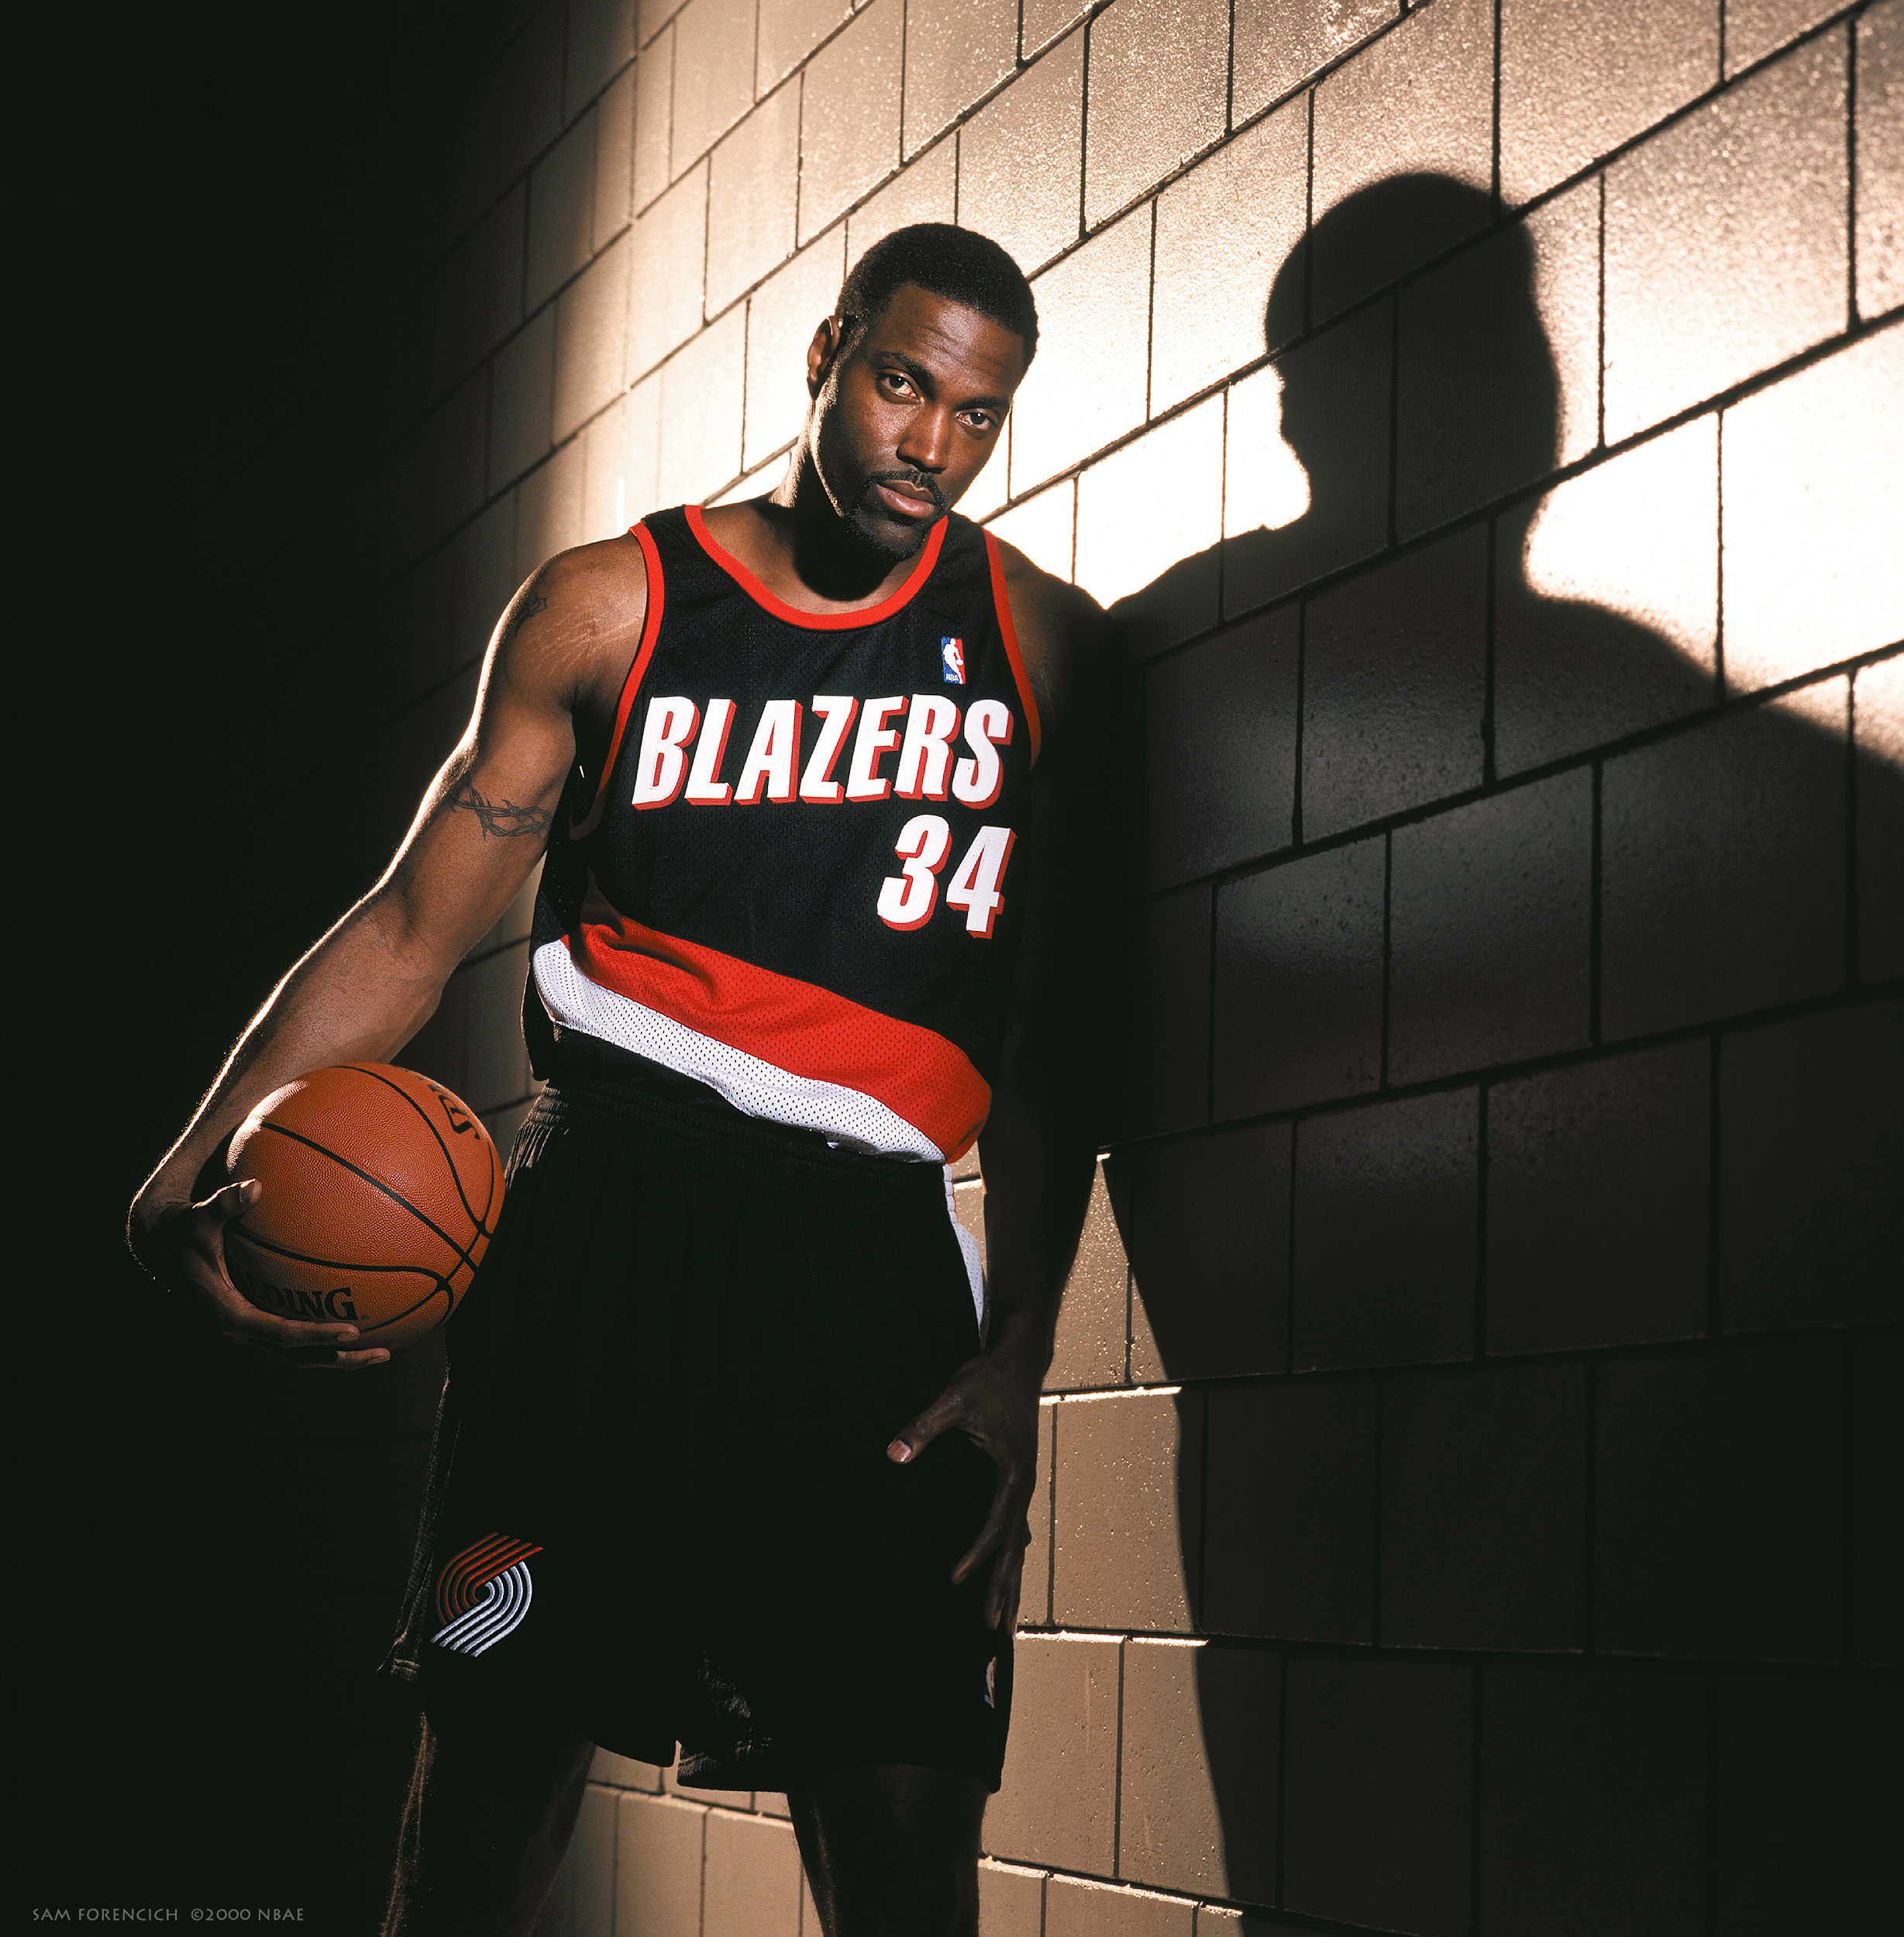 Portland, OR – Dale Davis #34 of the Portland Trail Blazers poses for a portrait at the Rose Garden Arena circa September 2000. This was his first time in a Blazer uniform after being acquired in a trade with the Indiana Pacers. Manually focused Hasselblad, RDP 100 film, studio lighting.  Sam Forencich ©2000 NBAE